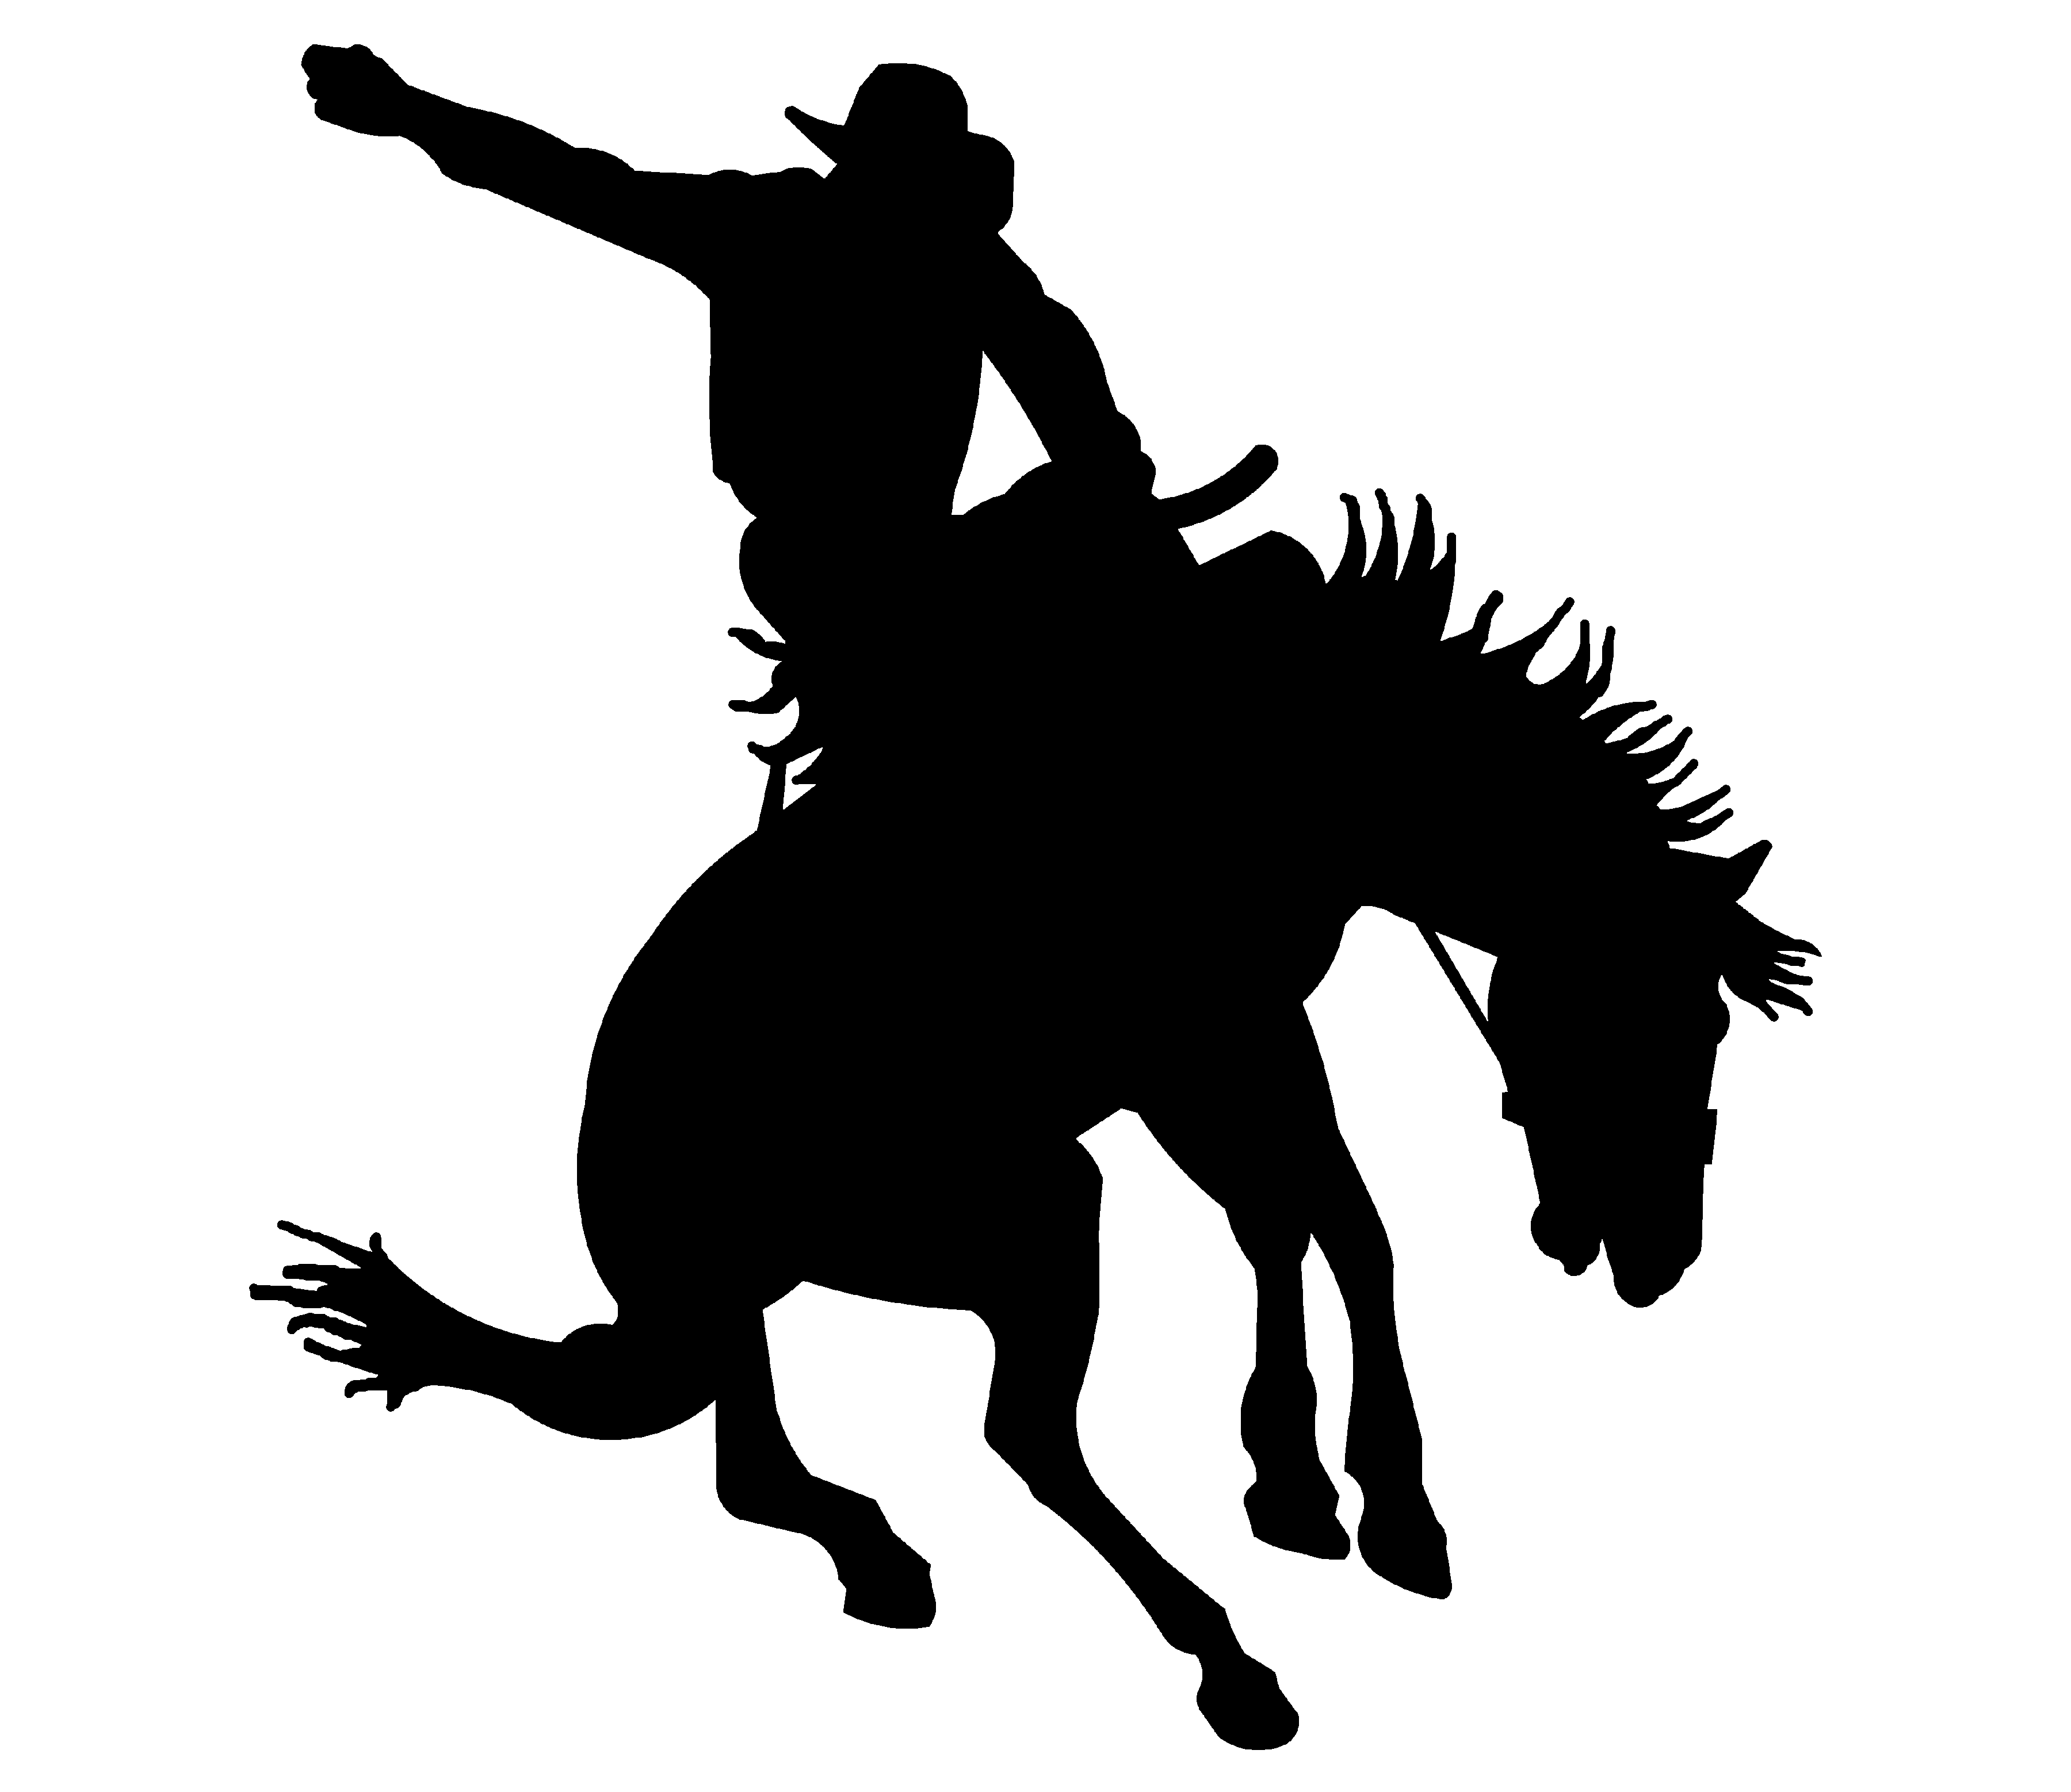 Top 82 Rodeo Clip Art - Free Clipart Image PlusPng.com  - Rodeo PNG HD Free